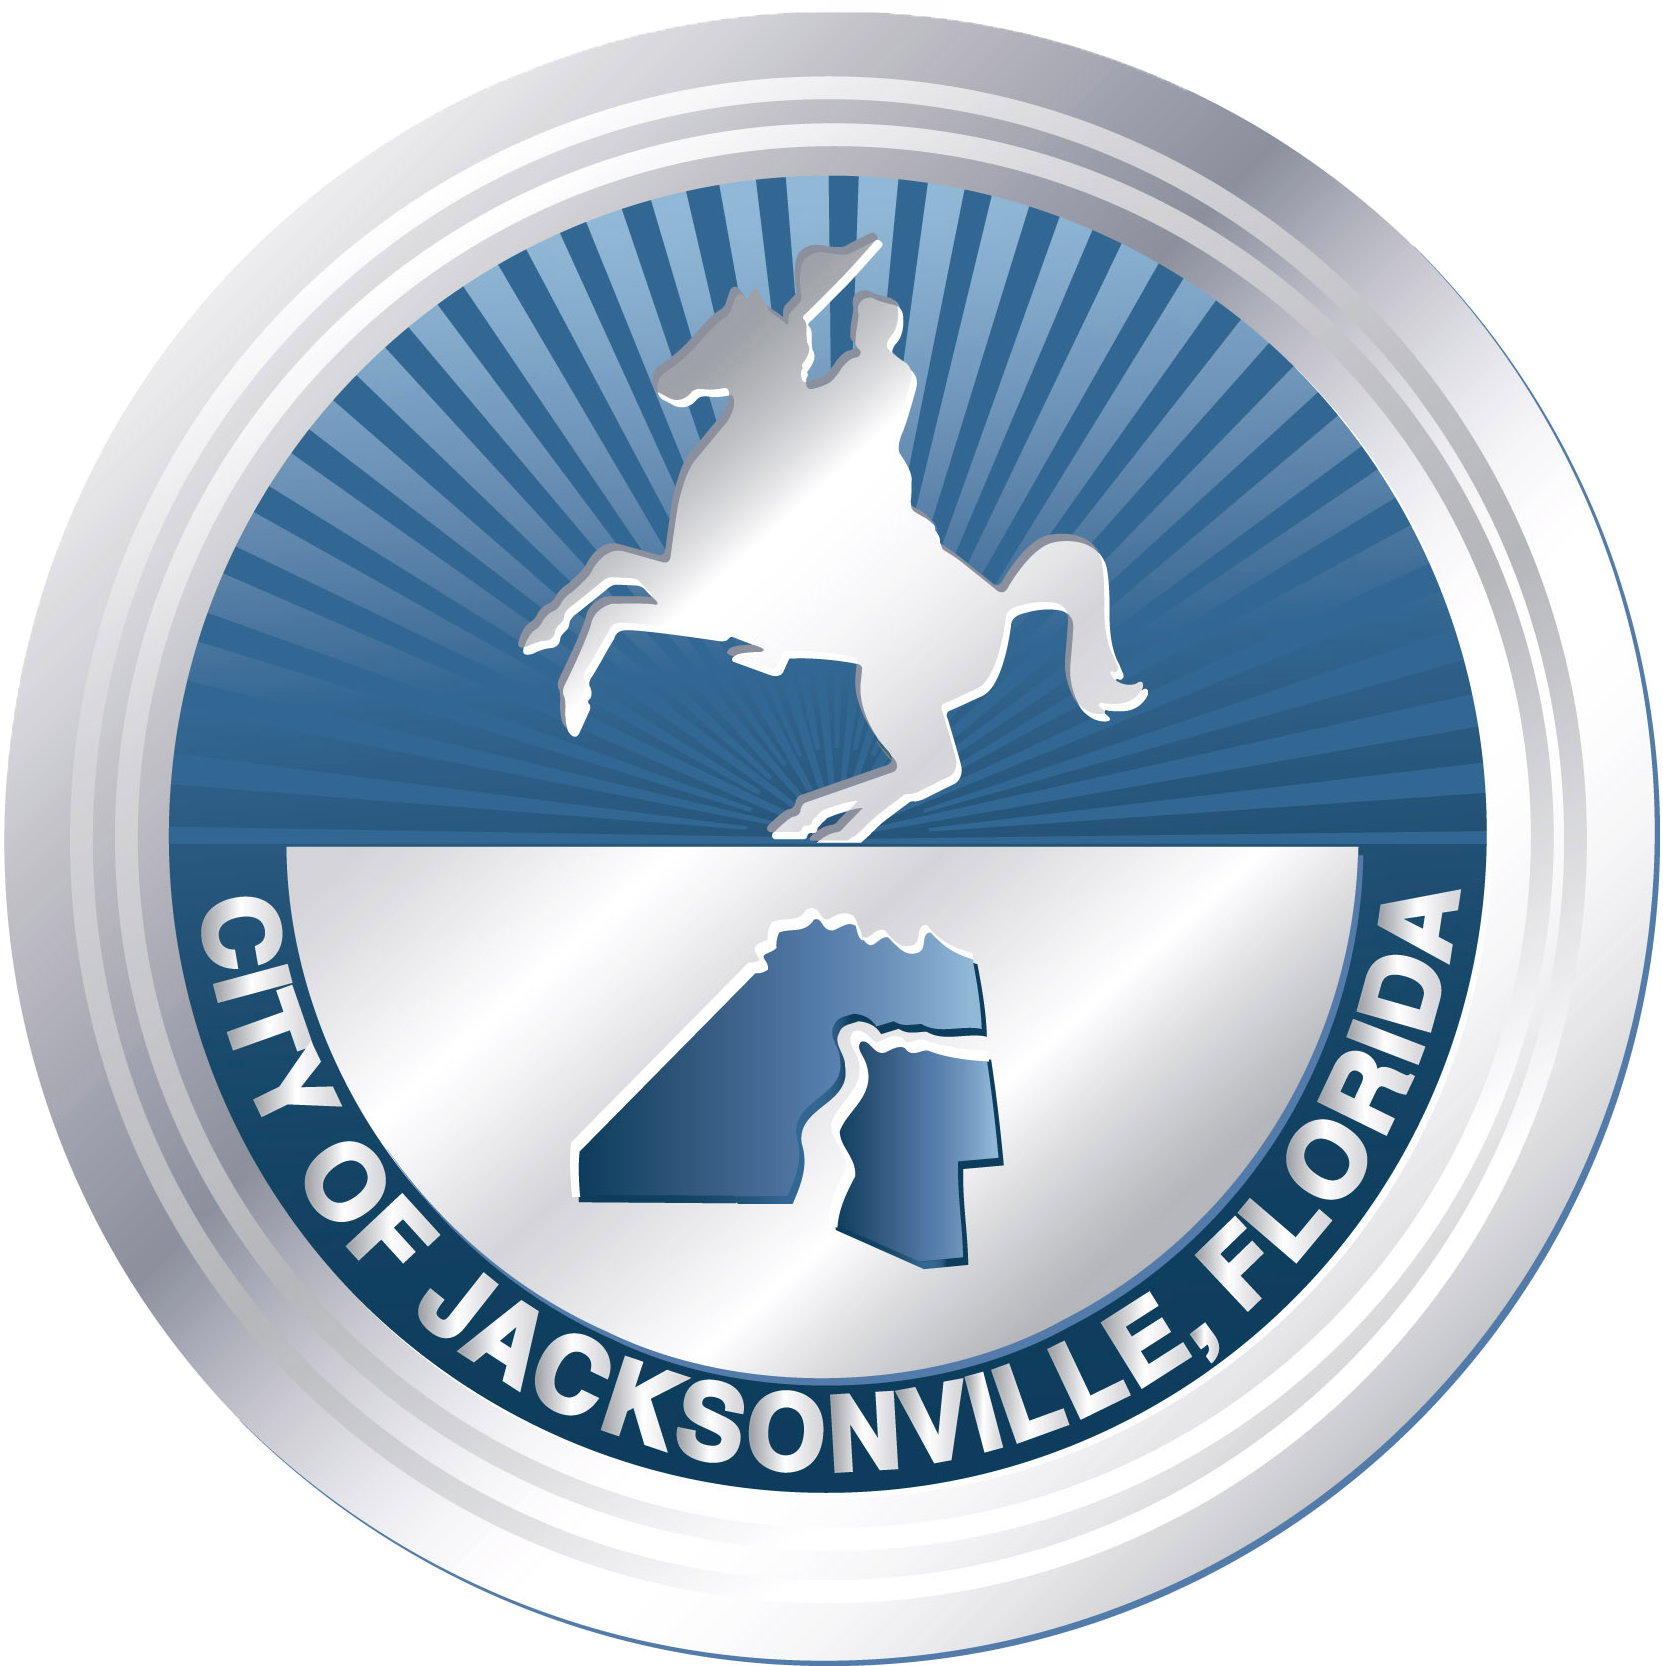 City of Jacksonville - Official Seal or Logo